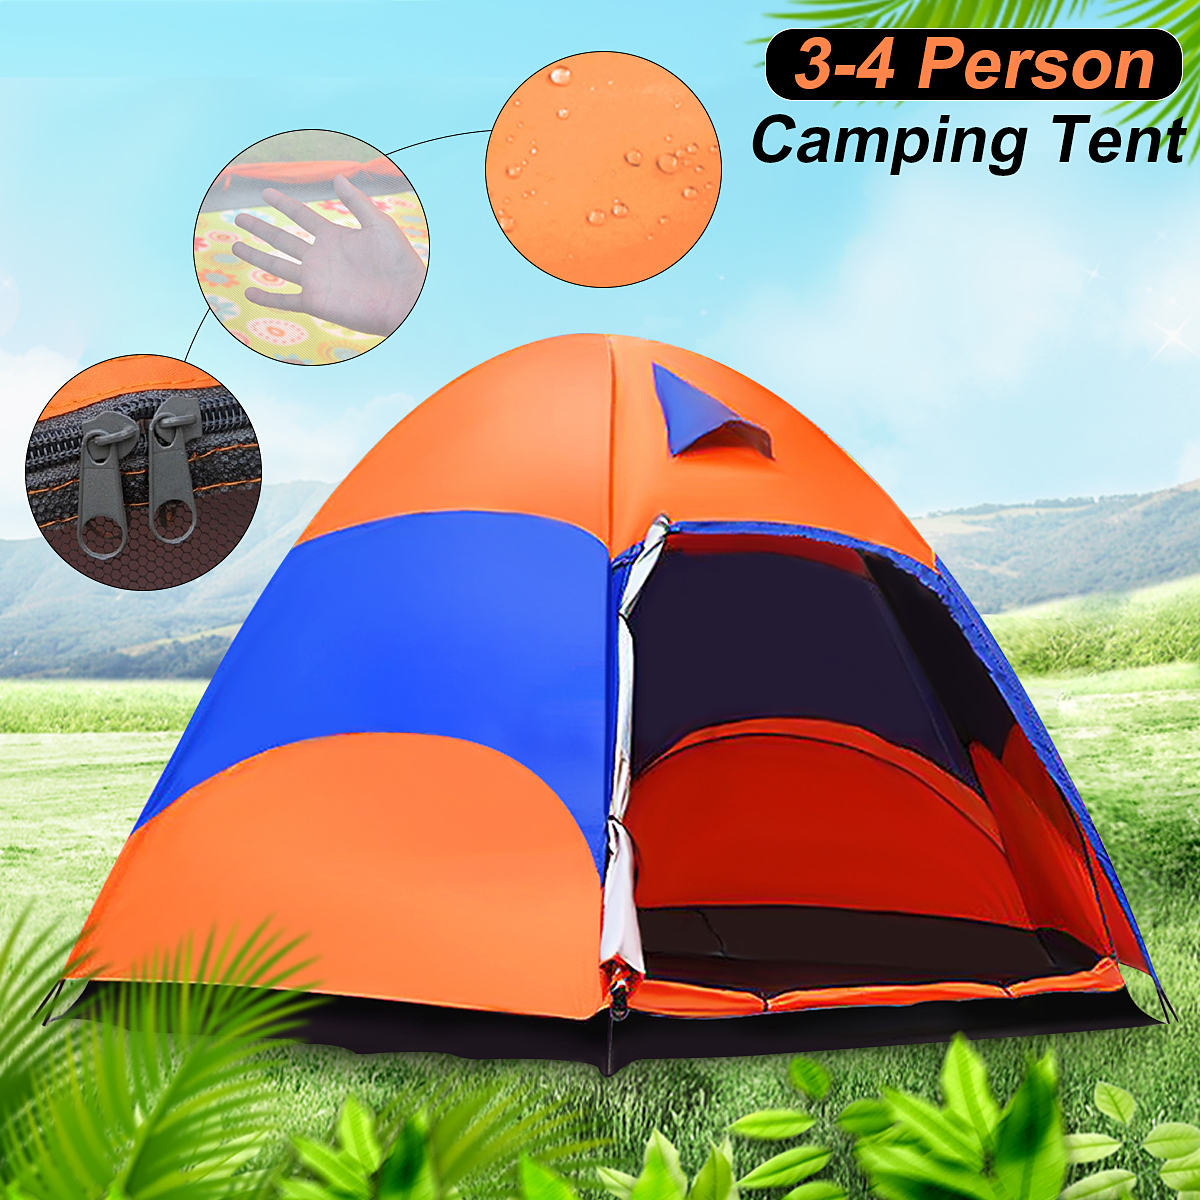 SGODDE 3-4 Person Family Instant Tent Double Layer Hiking Camping Outdoor Waterproof US Sports Camping Hiking Travel Beach mobi outdoor camping equipment hiking waterproof tents high quality wigwam double layer big camping tent